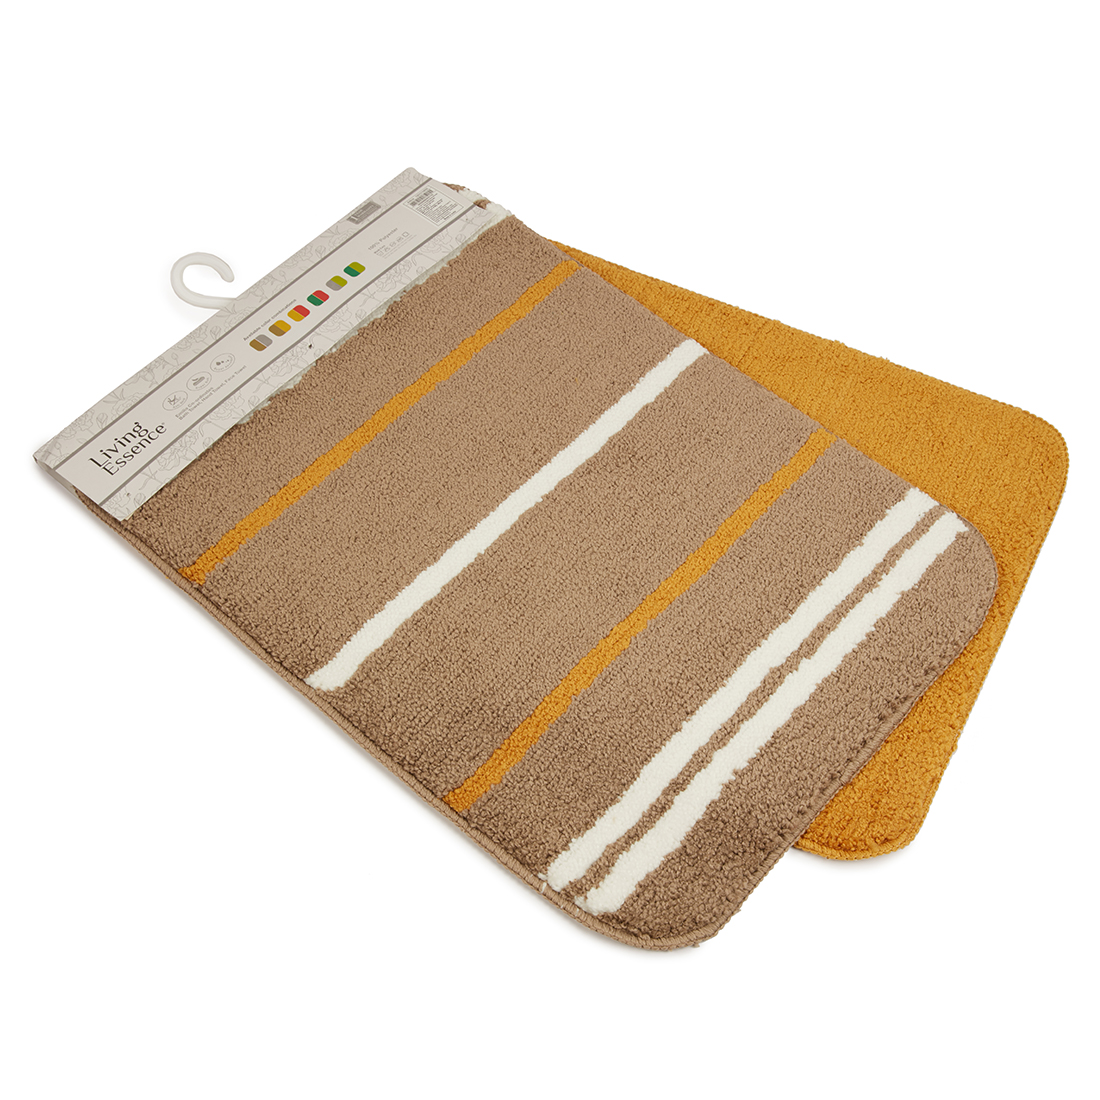 Set of 2 Bathmats Beige Mustard Bath Mats in Beige Mustard Colour by Living Essence